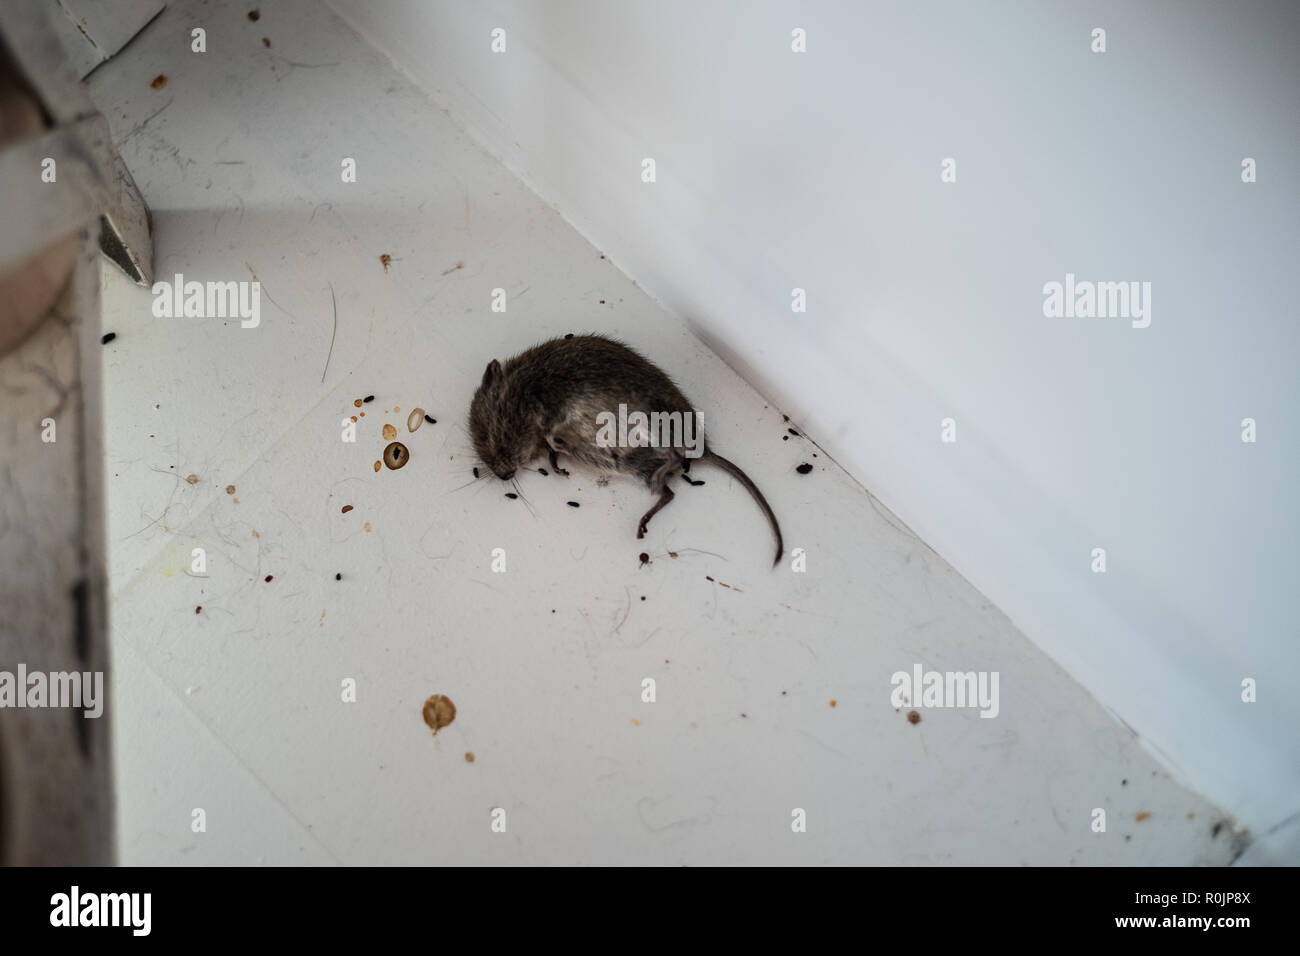 Dead mouse on the floor after eating poison Stock Photo